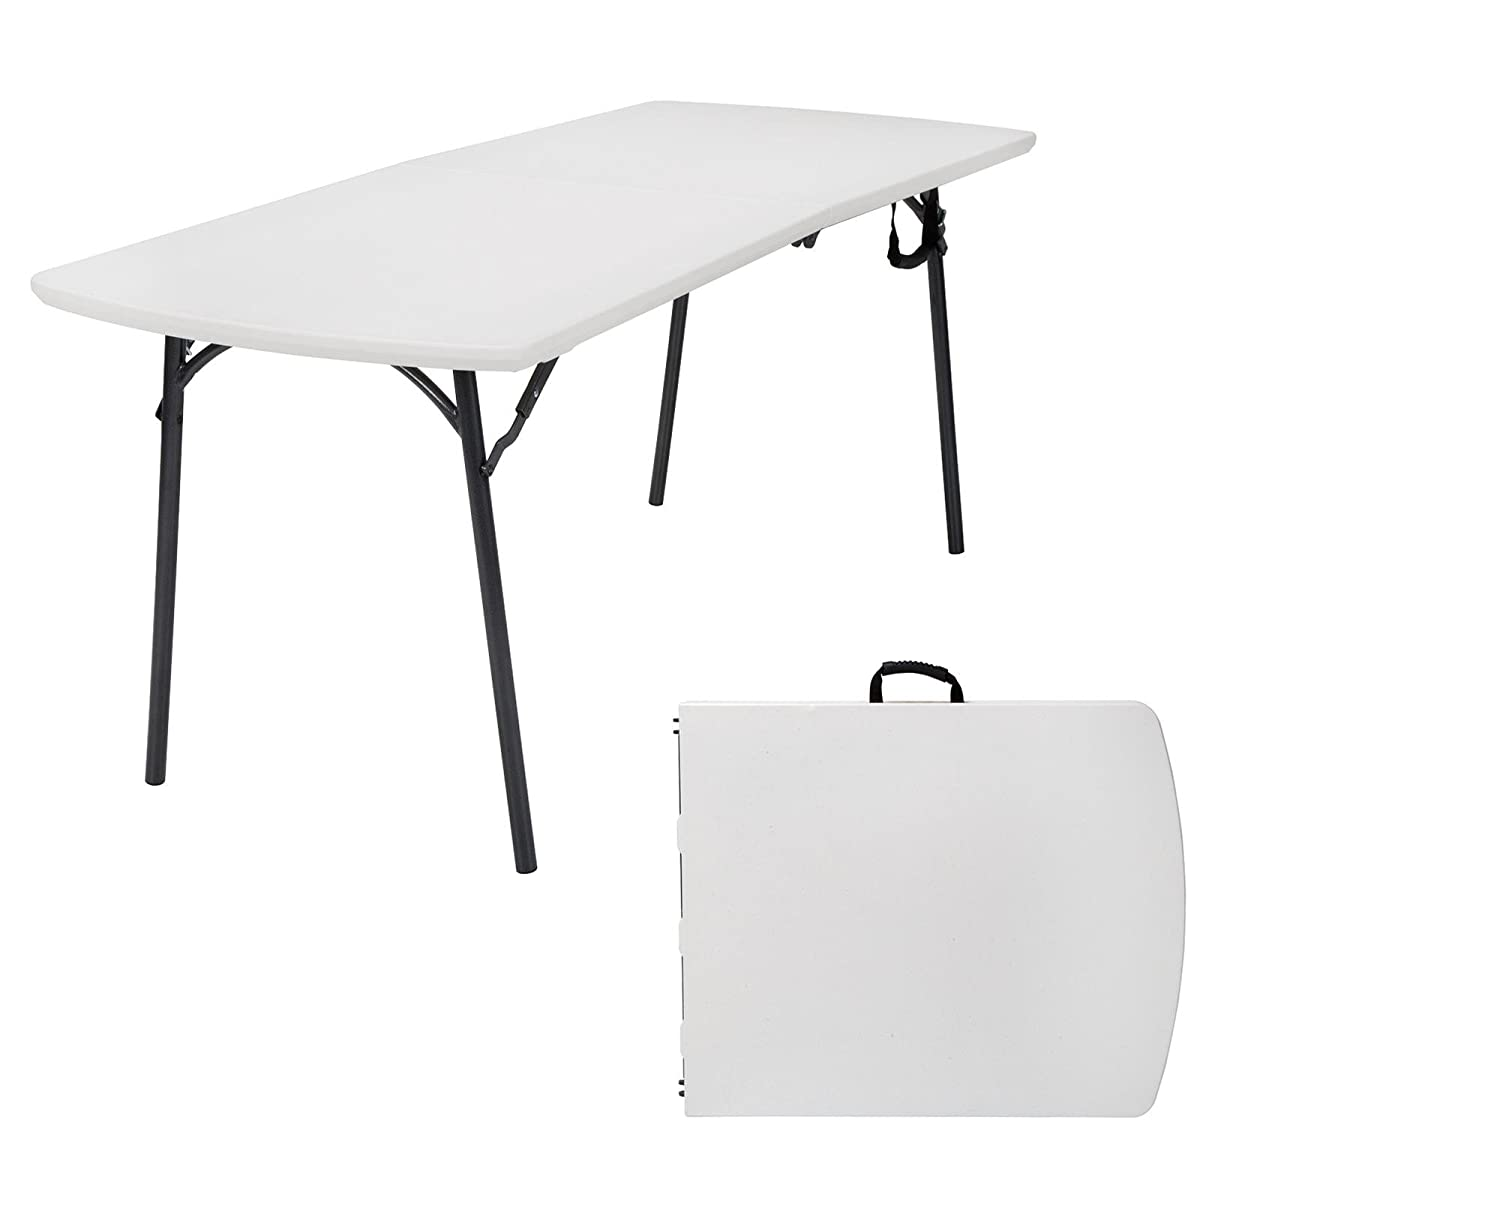 Cosco Products Diamond Series 300 lb. Weight Capacity Folding Table, 6 X 30 , White